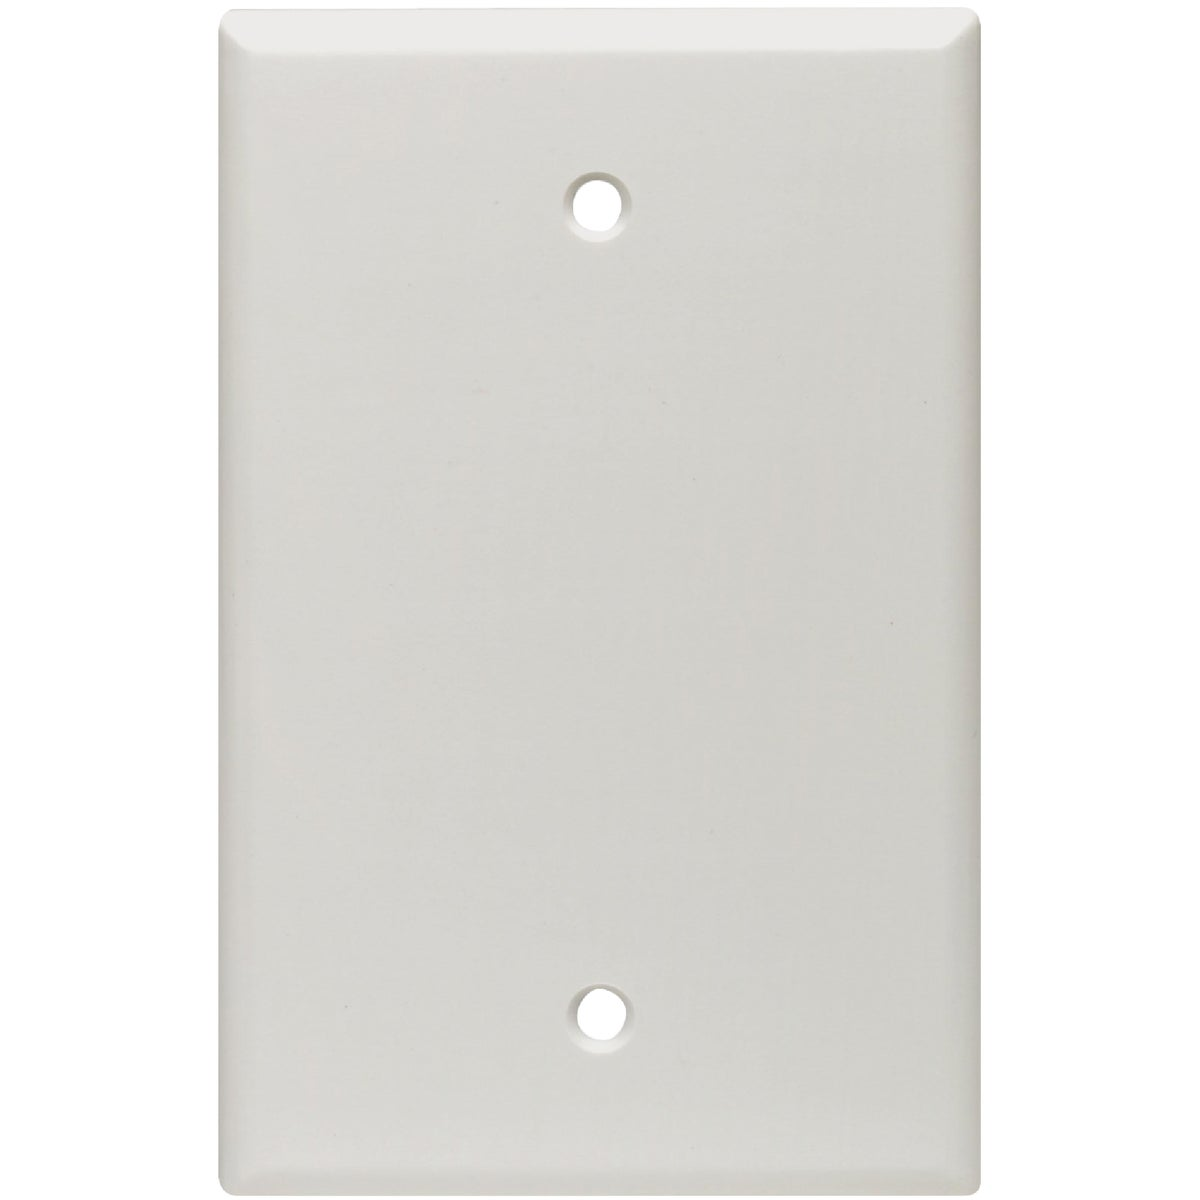 WHT BLANK WALL PLATE - 80514W by Leviton Mfg Co